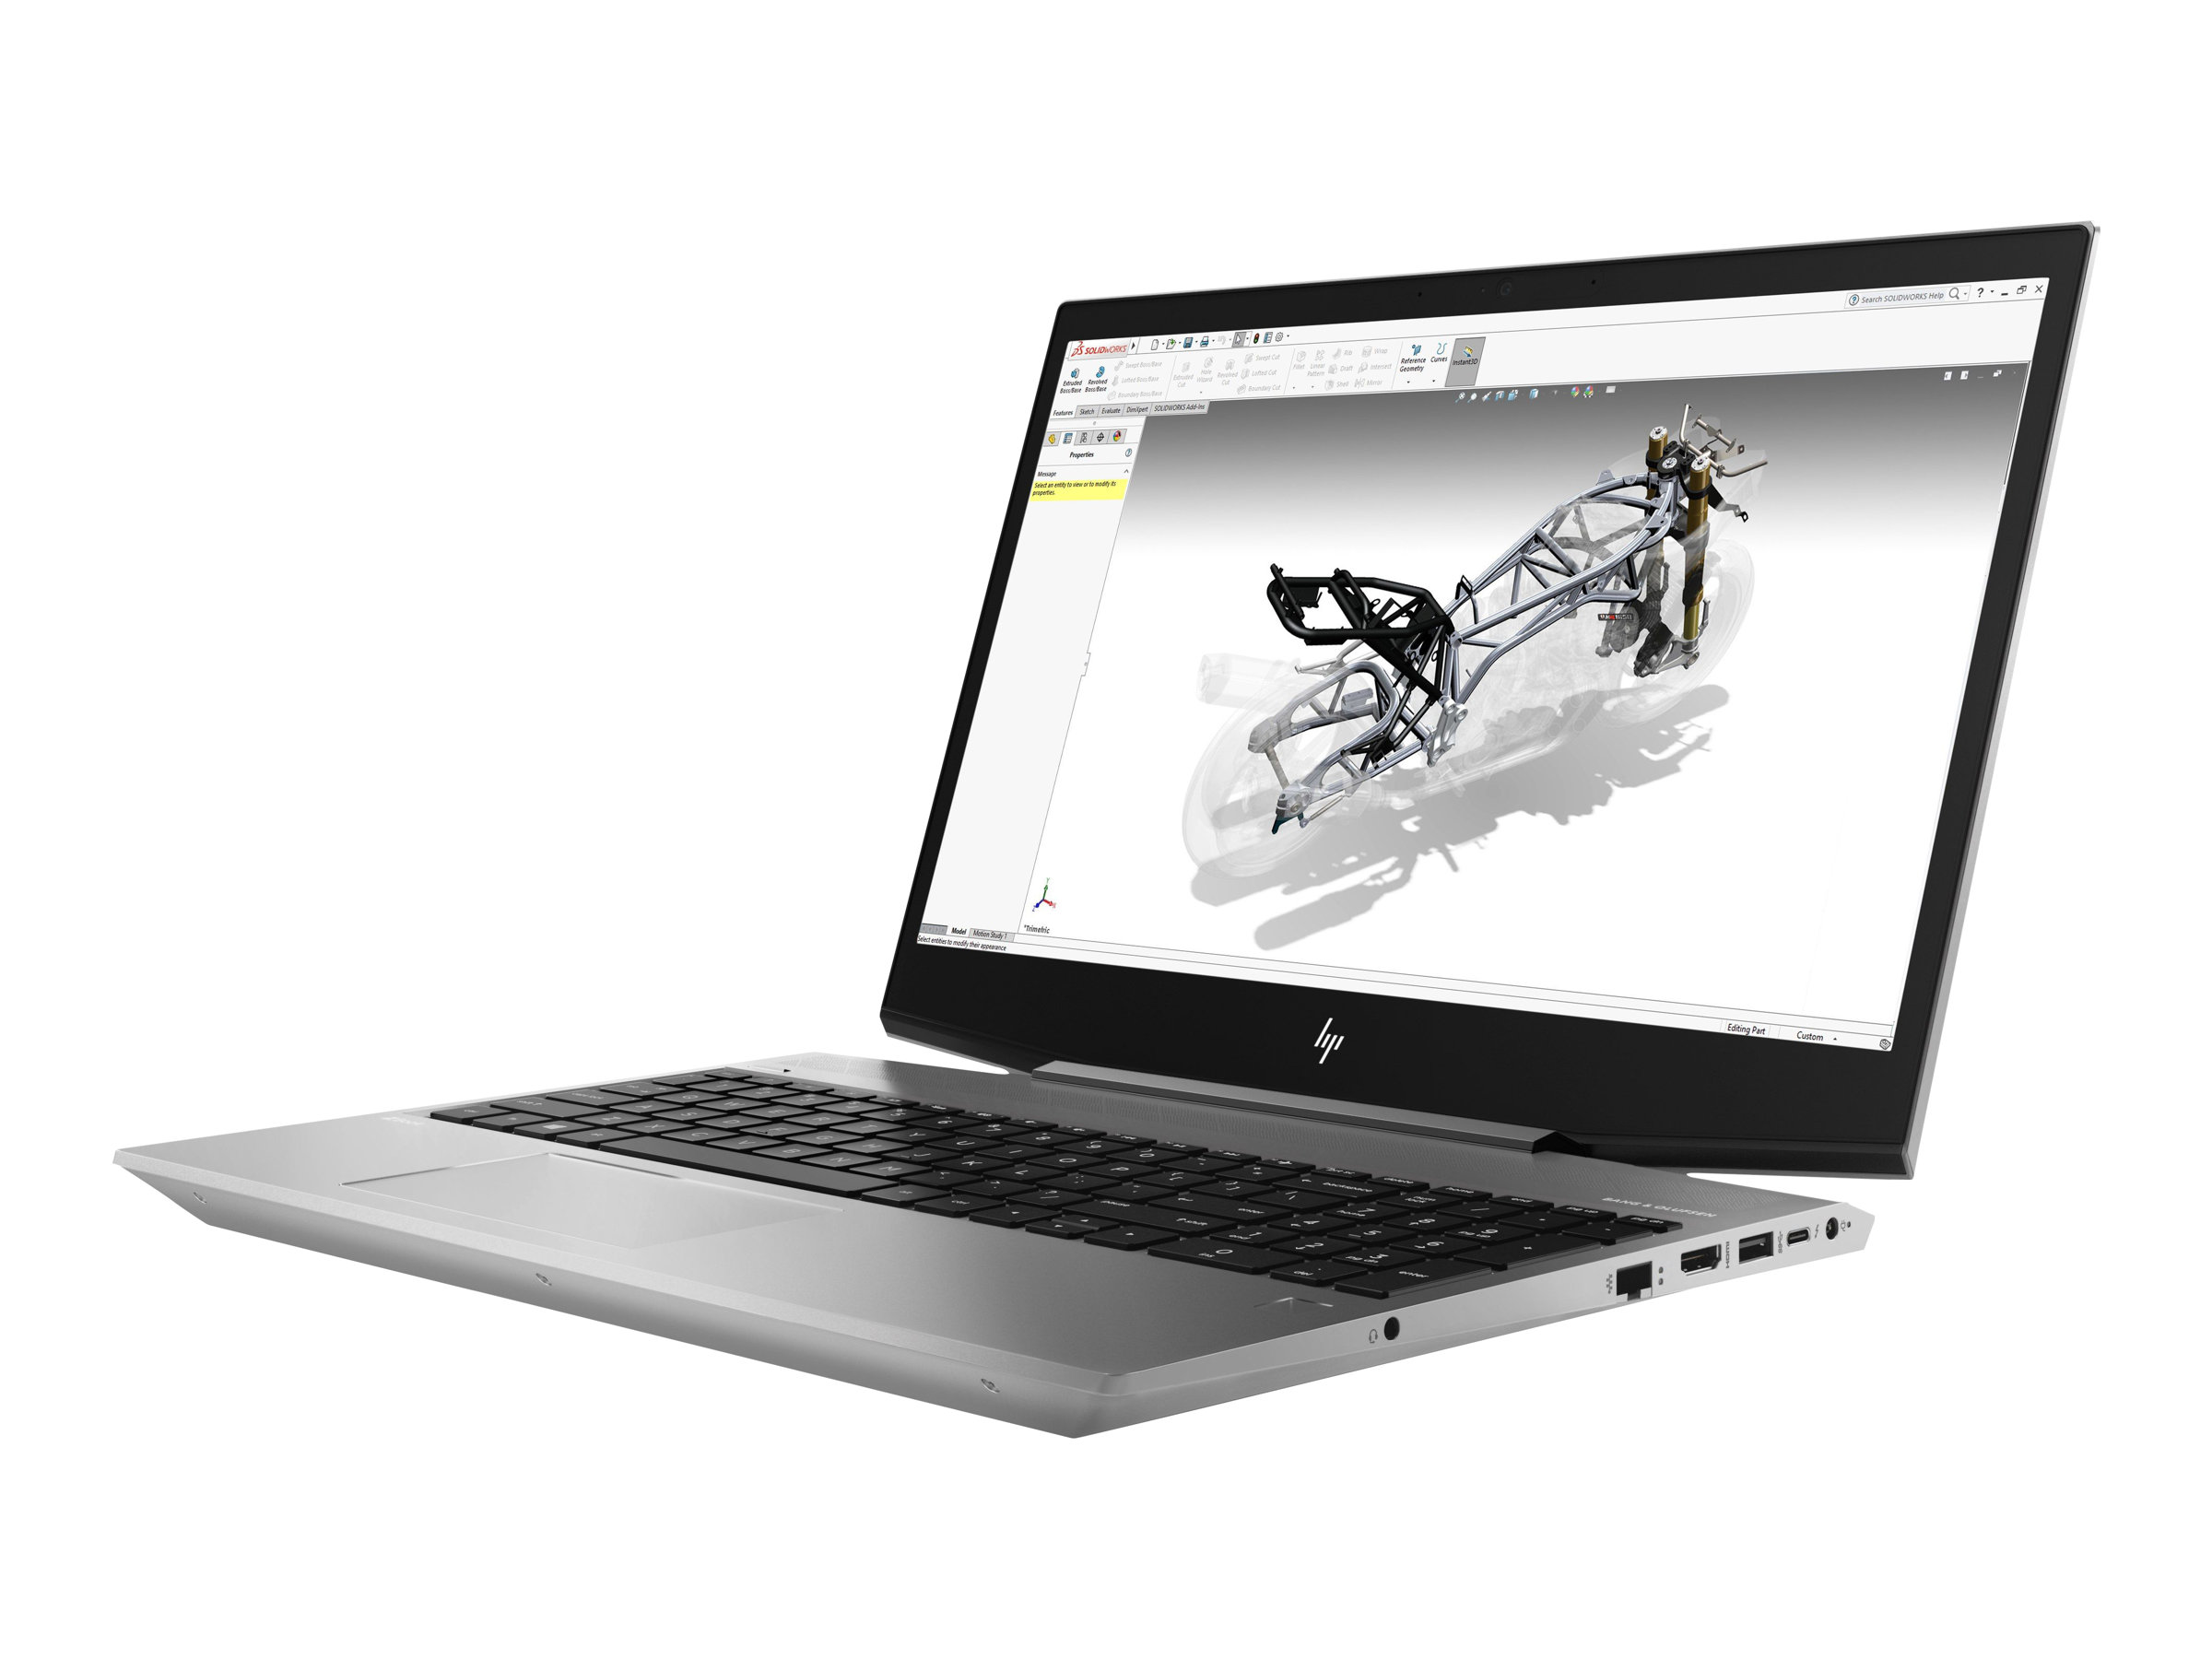 Hp zbook 15v g5 mobile workstation core i5 8300h 2 3 ghz win 10 home 64 bit 8 gb ram 500 gb hdd 39 62 cm 15 6 ips 1920 x 1080 full hd 10743164 4qh78ea abd